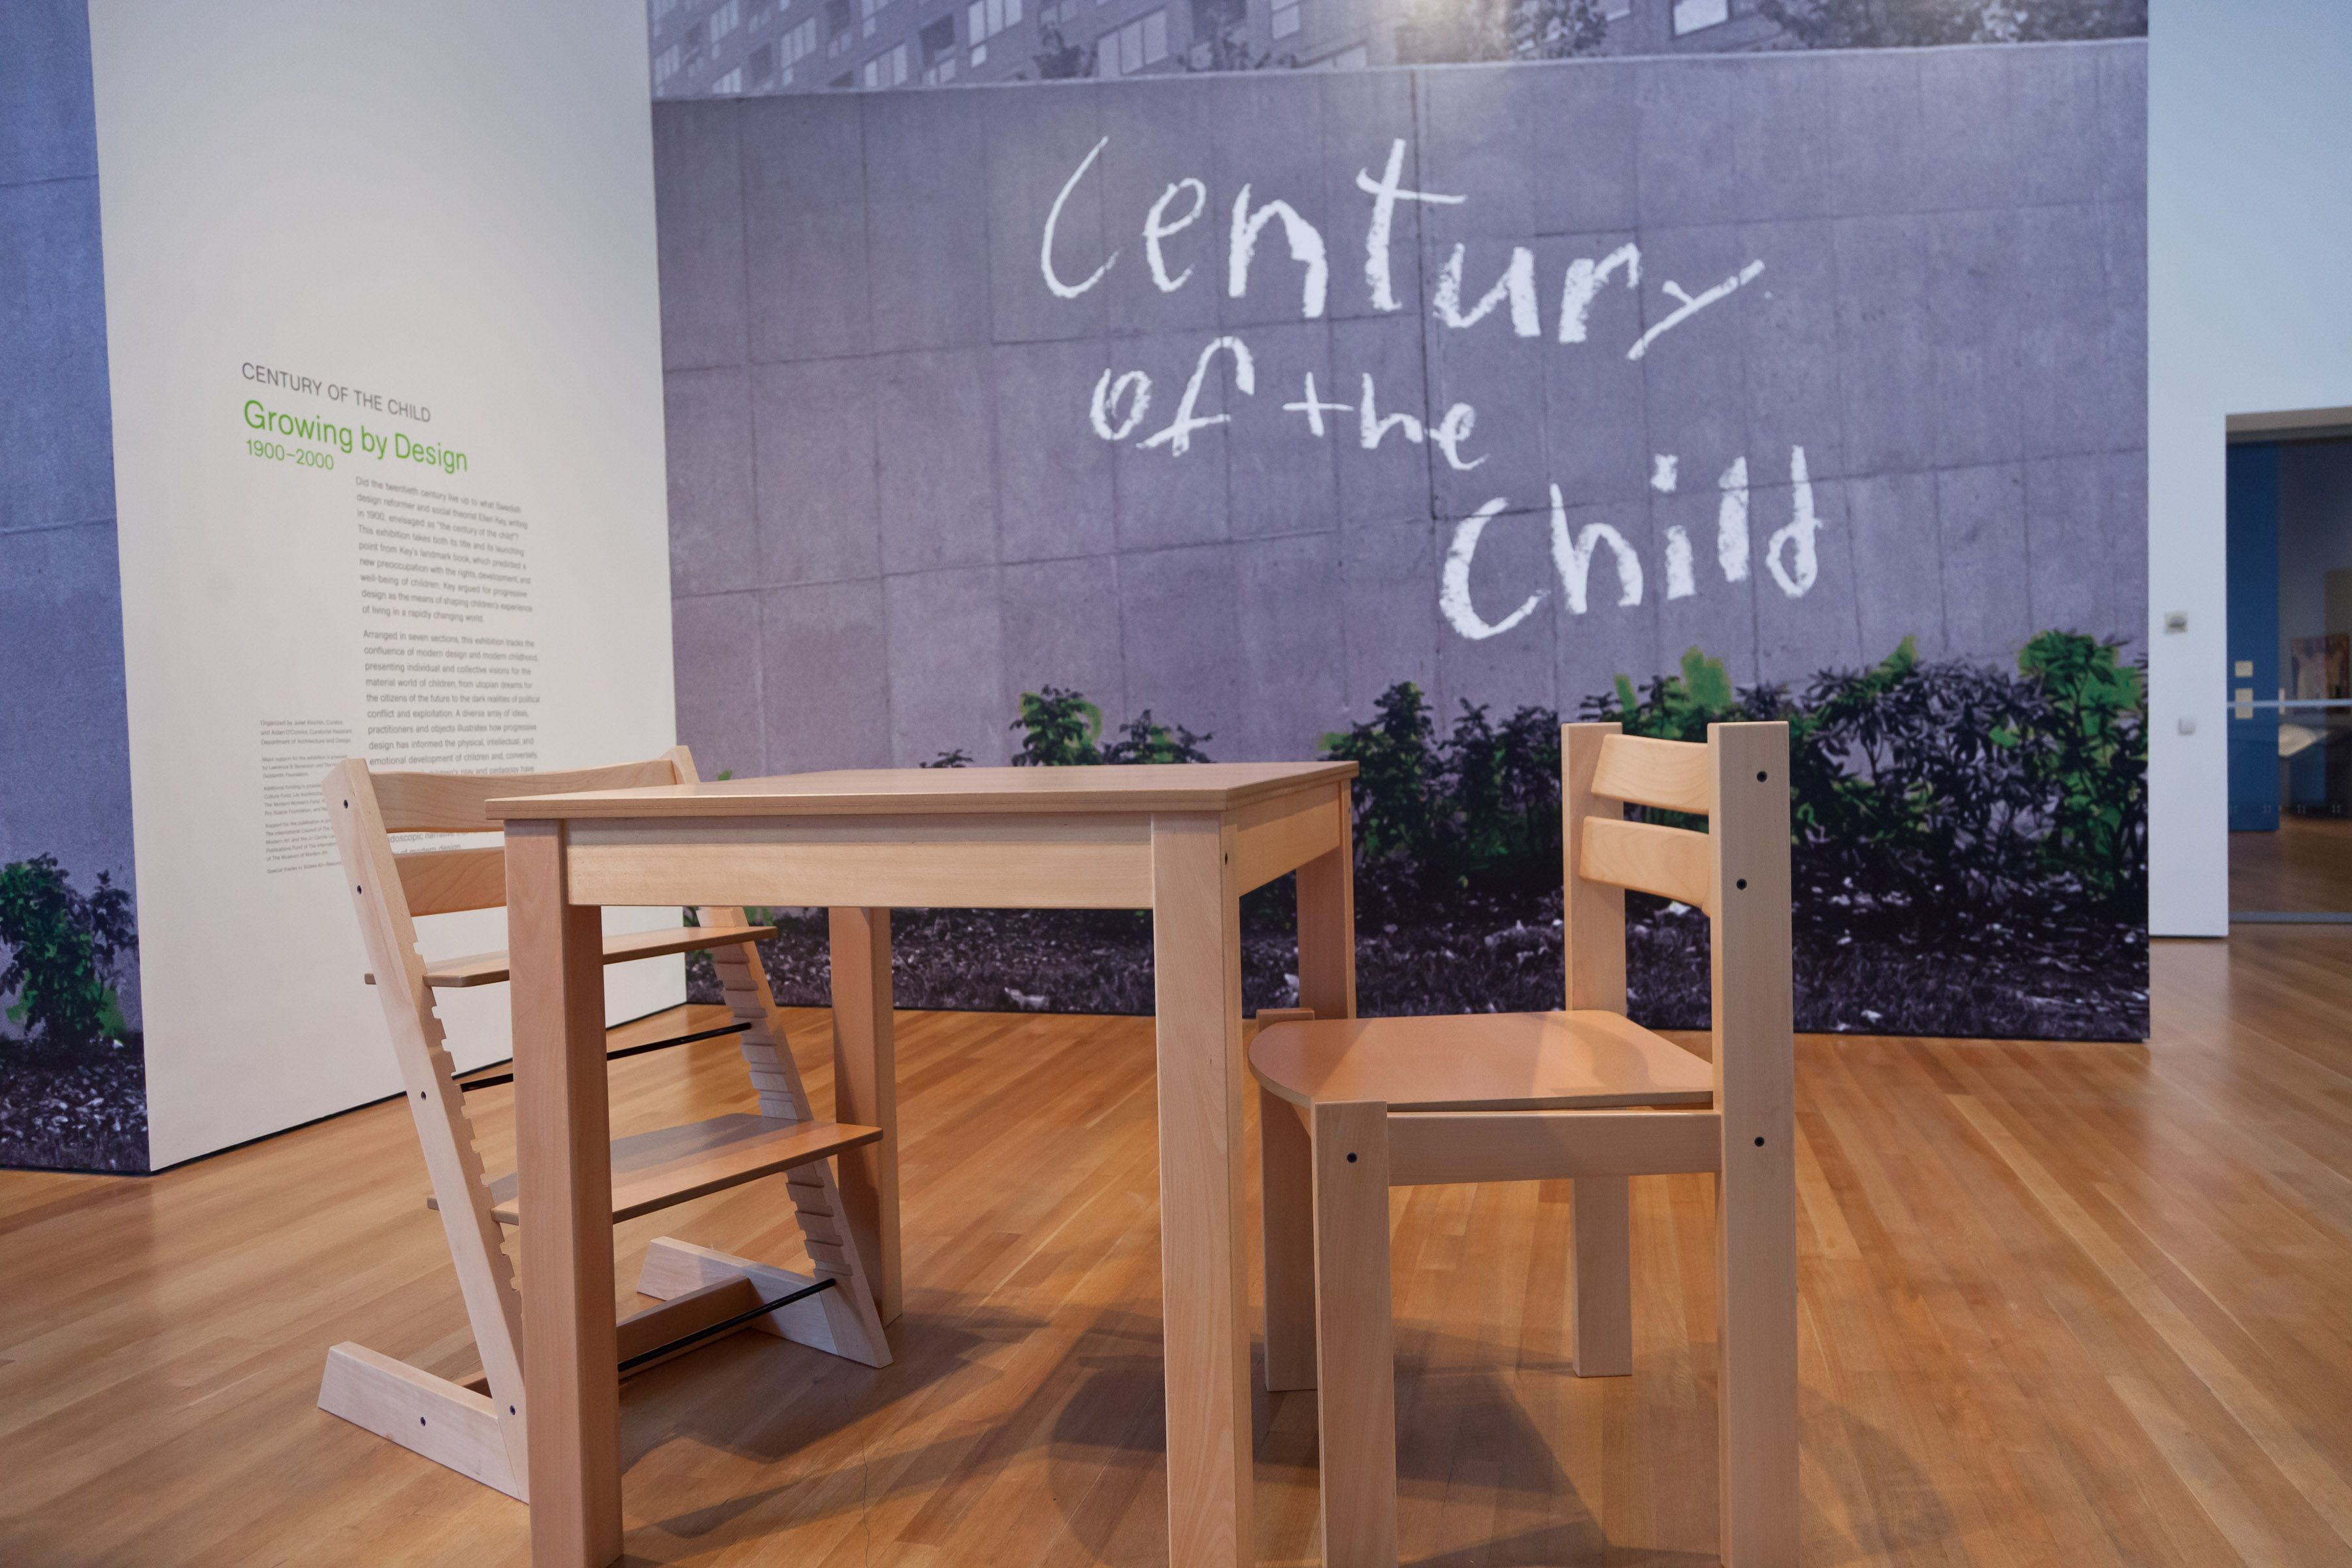 Stokke High Chair Accessories Uk Active Sitting Giant Tripp Trapp At The Modern Museum Of Art